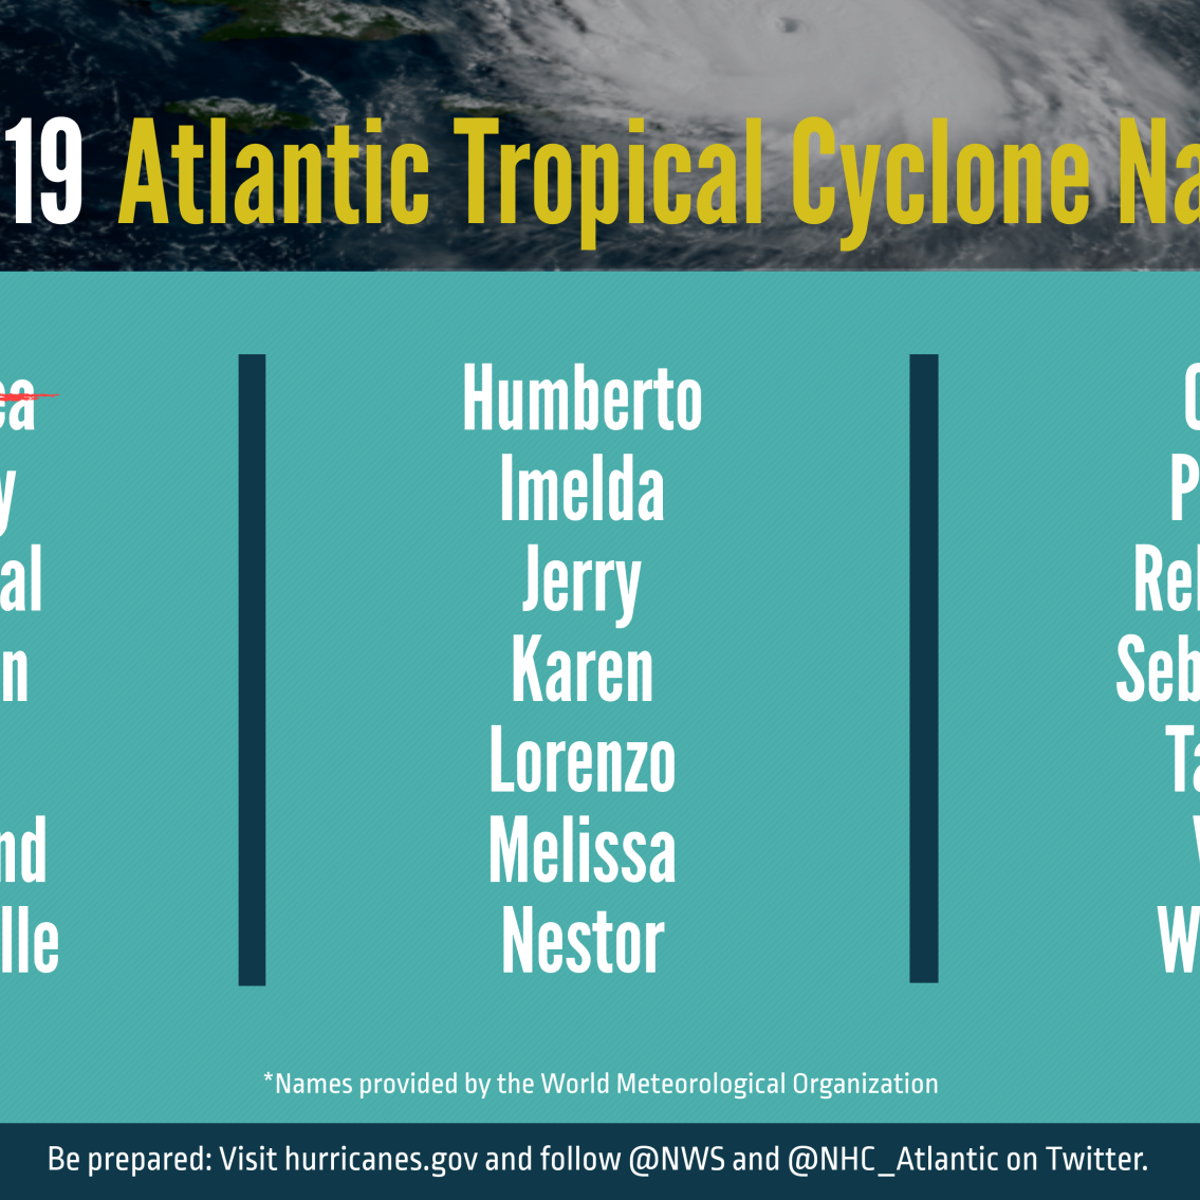 List Of Hurricanes 2020.Find Out If Your Name Is On The Hurricane Name List In The